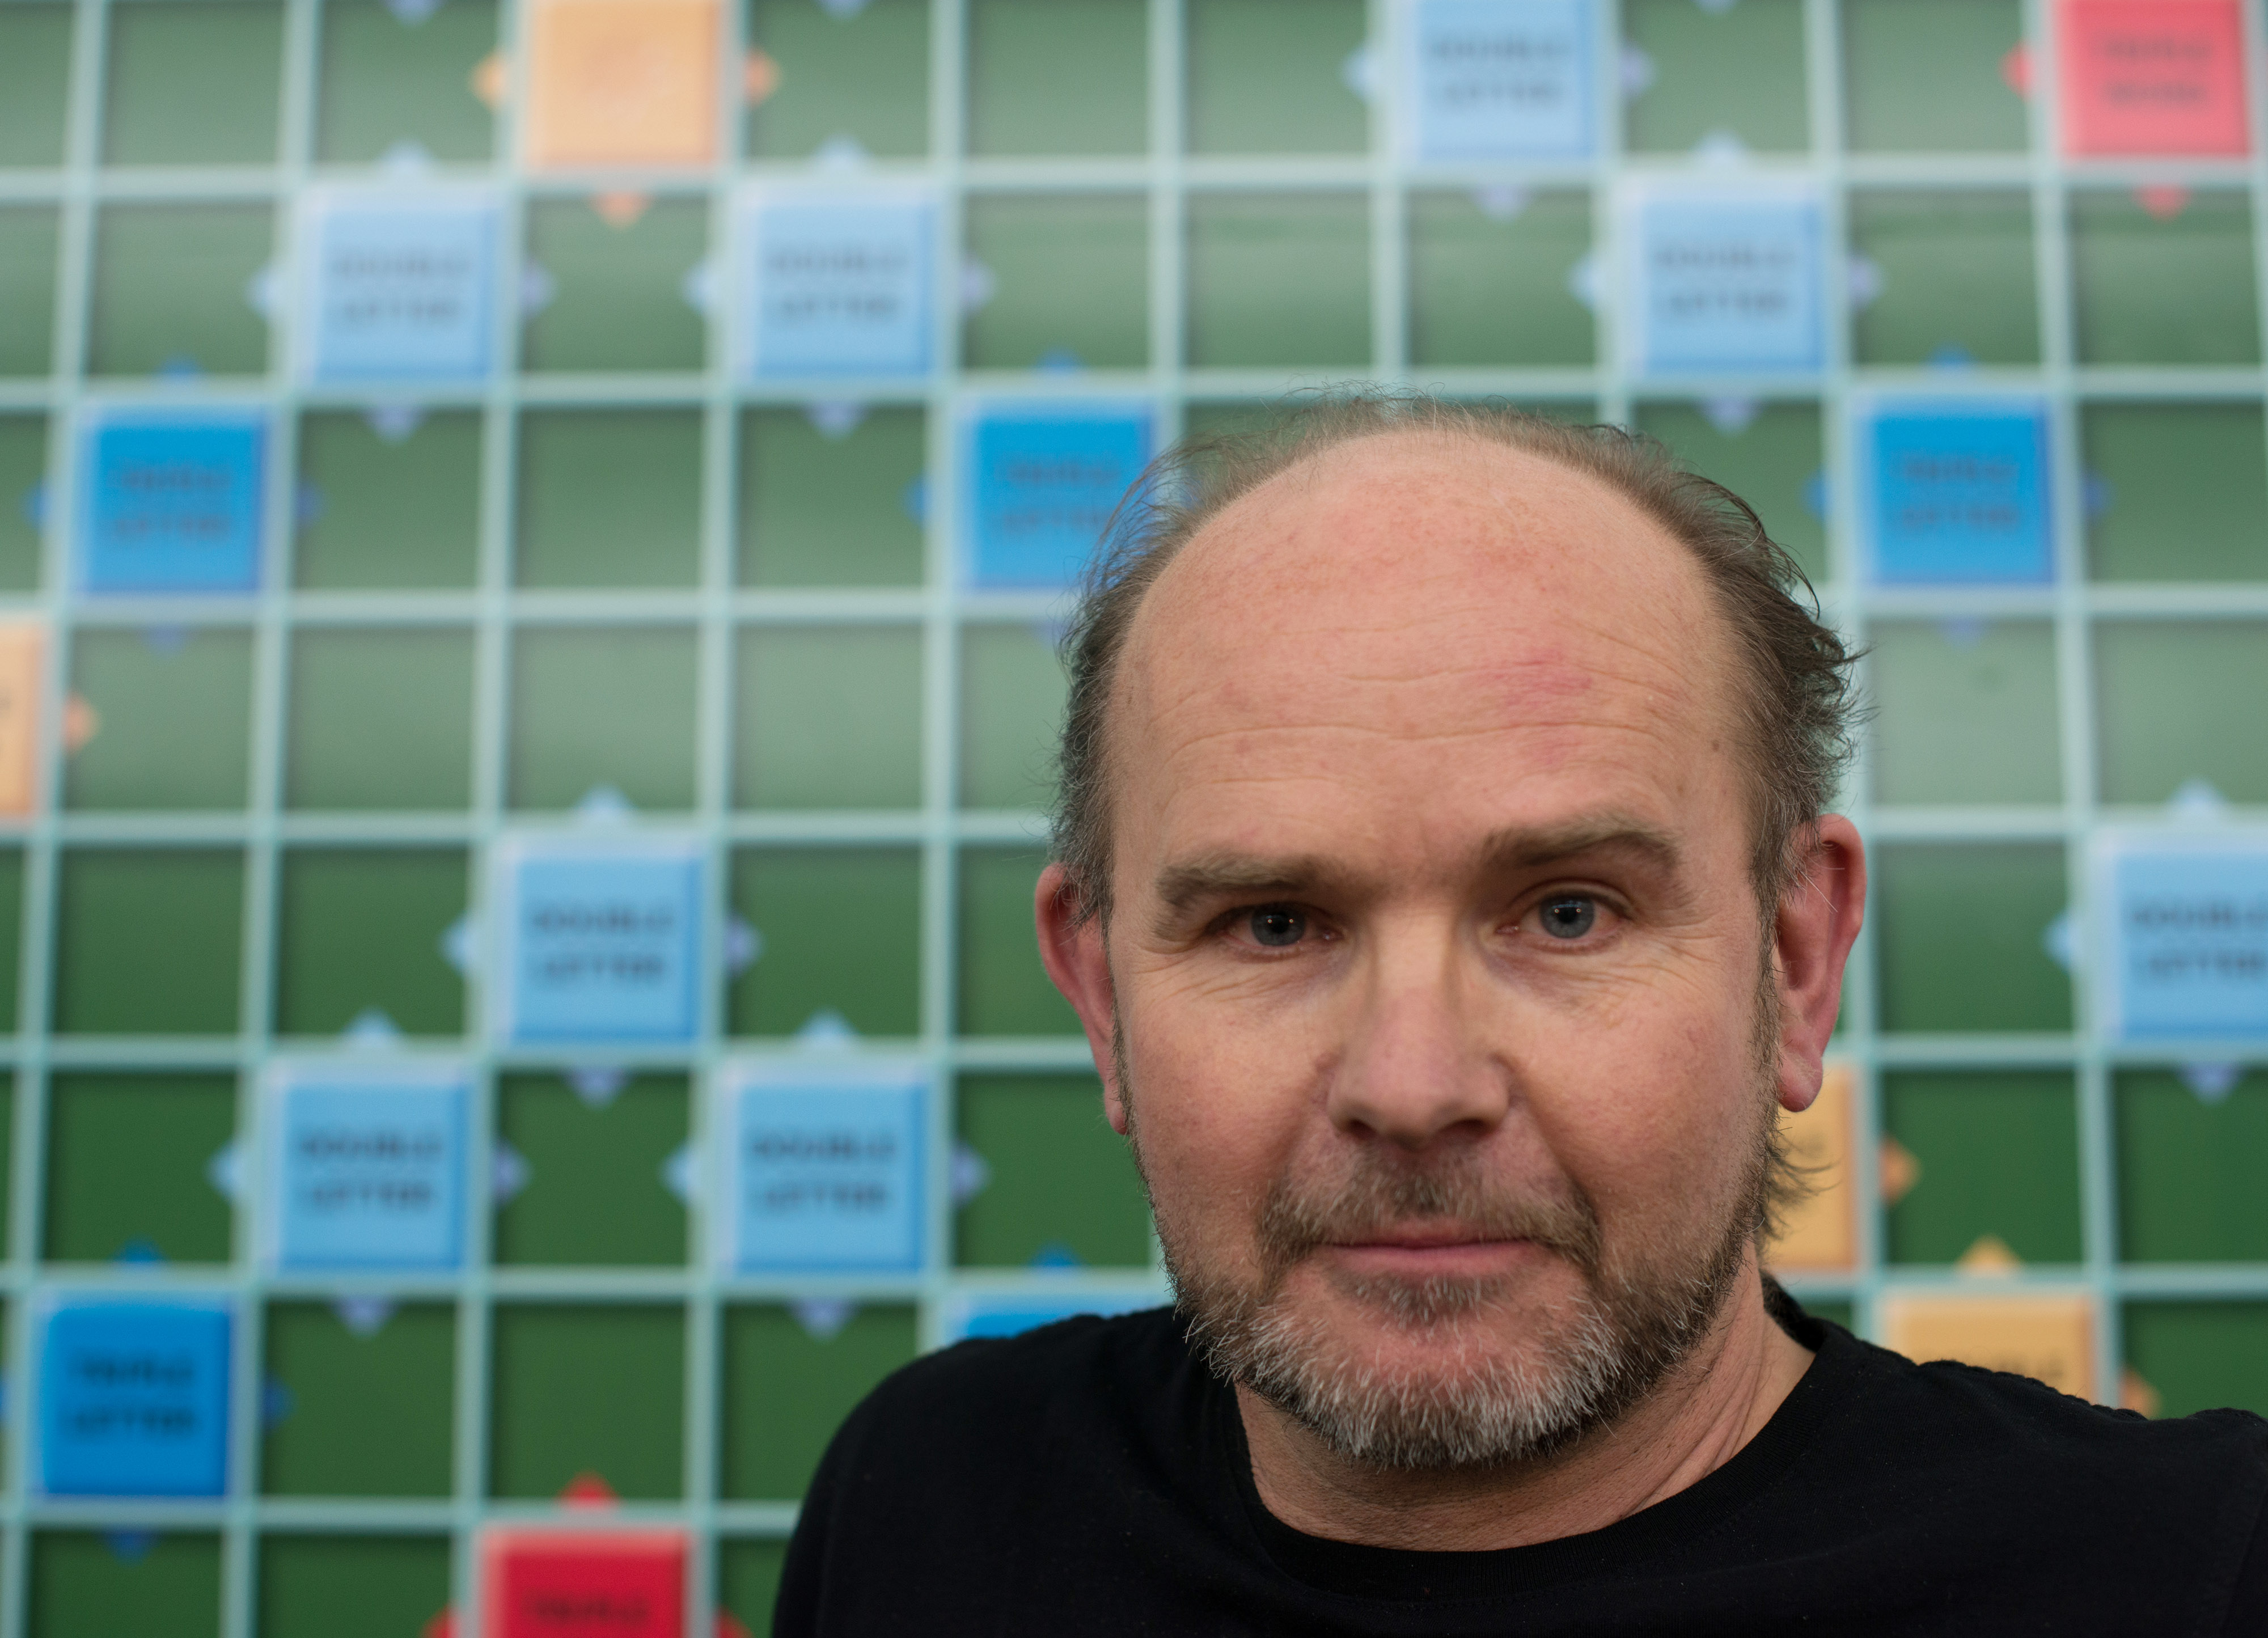 One of world's most prominent Scrabble players banned